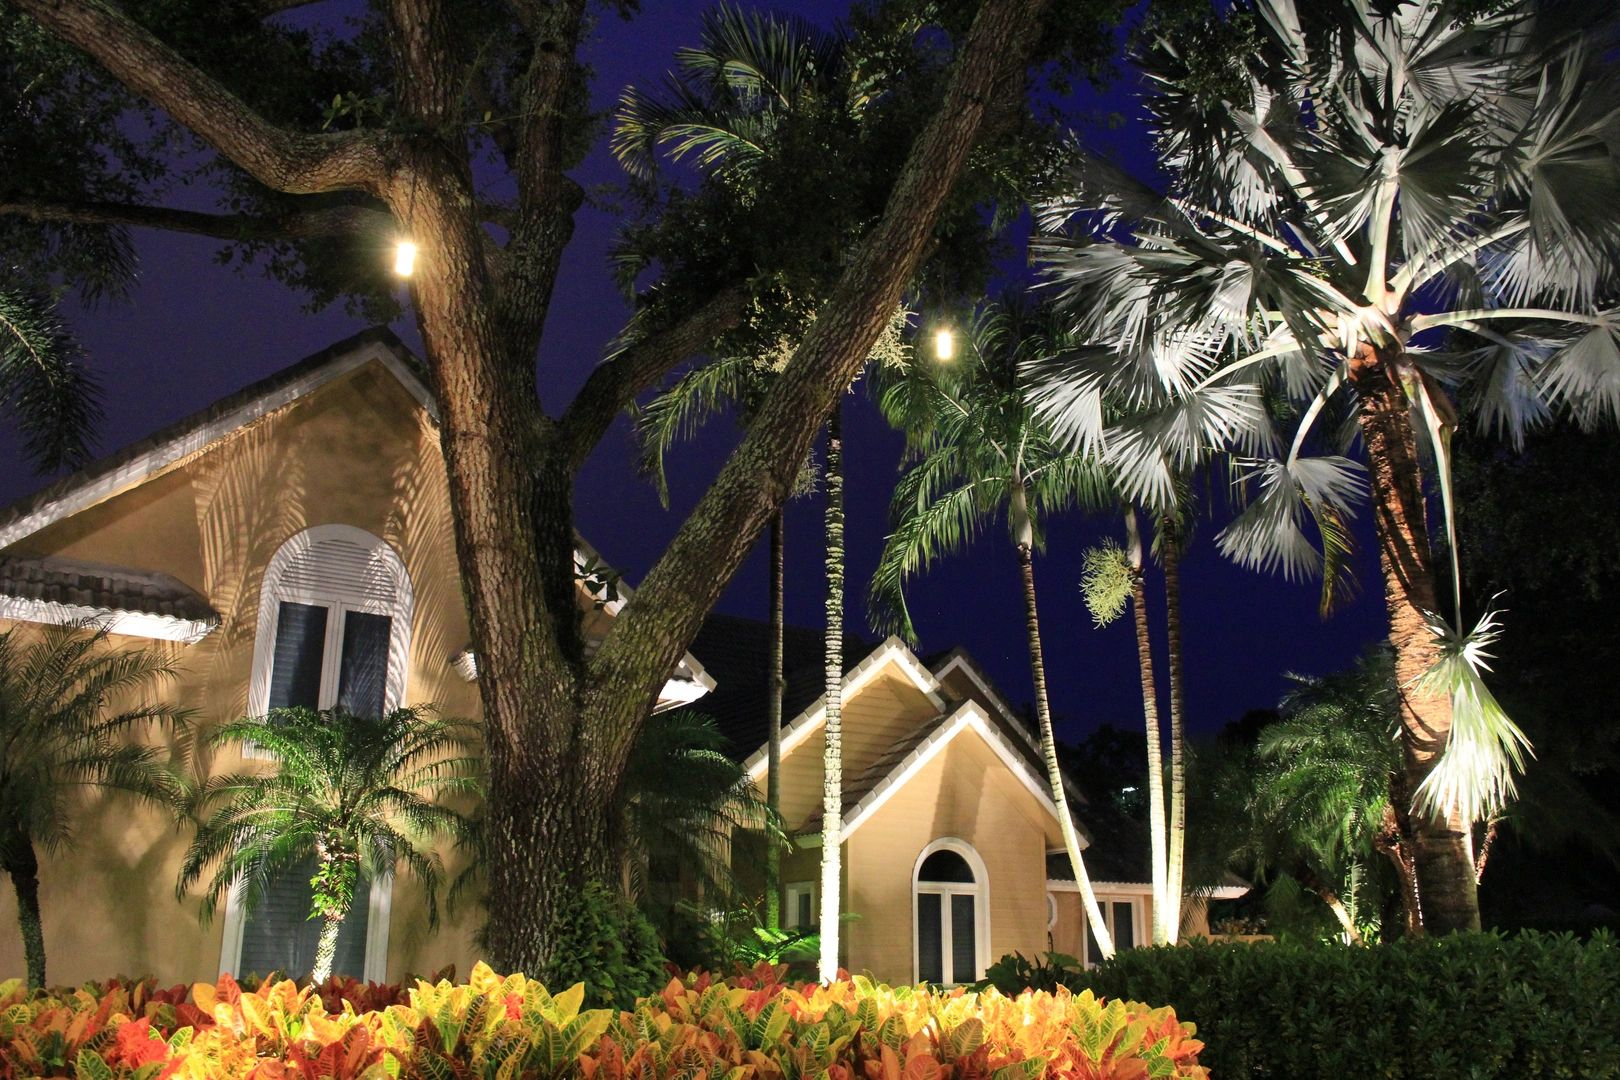 led landscape lighting, outdoor lighting, landscape light design, led lighting, landscape lighting